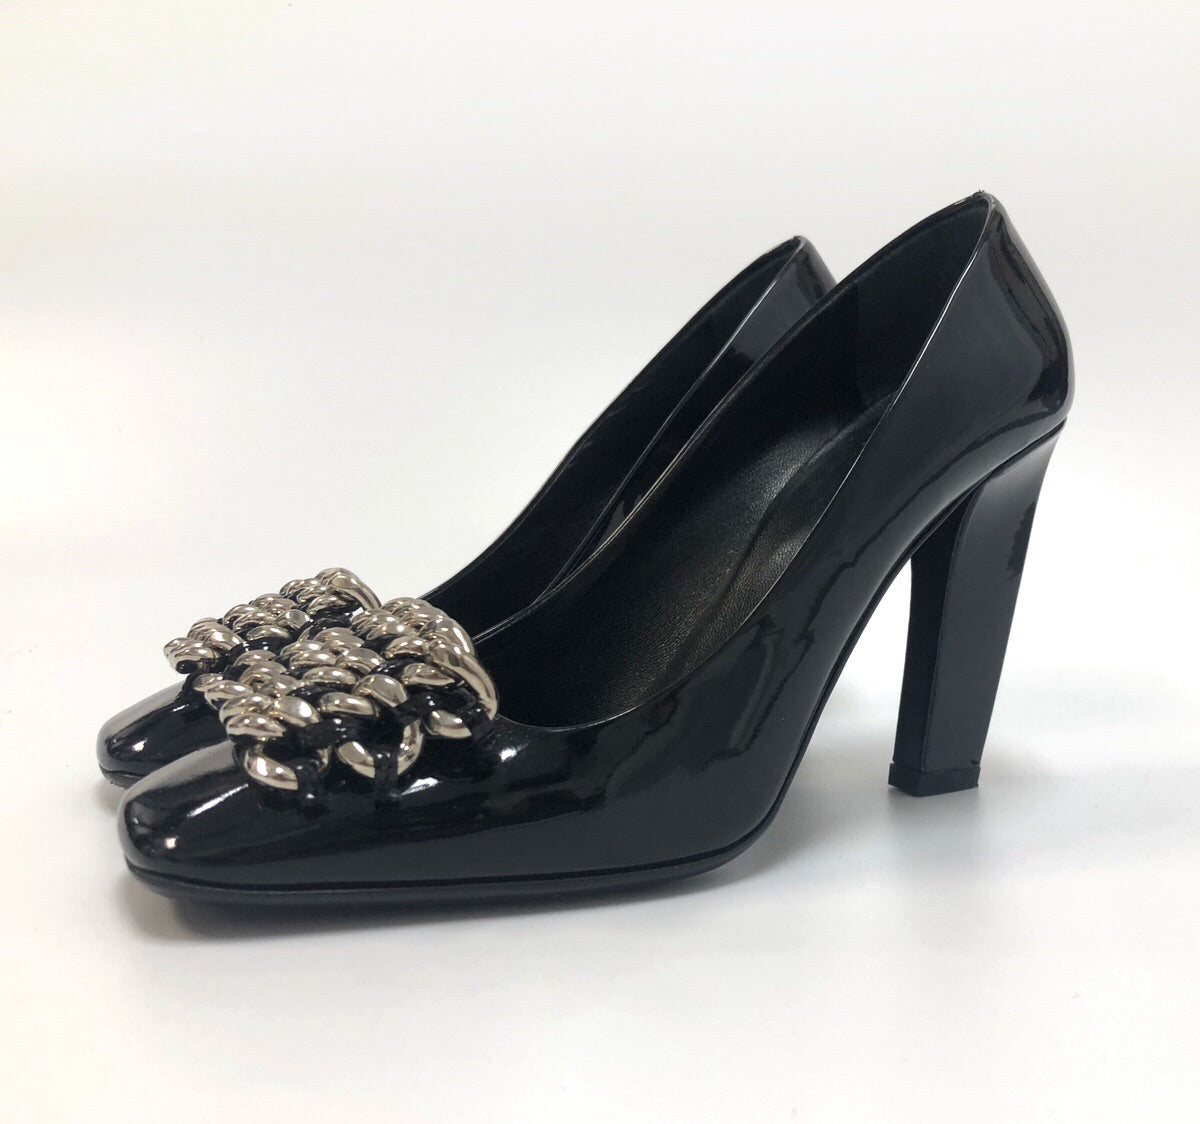 Prada Black Patent Chain Pumps